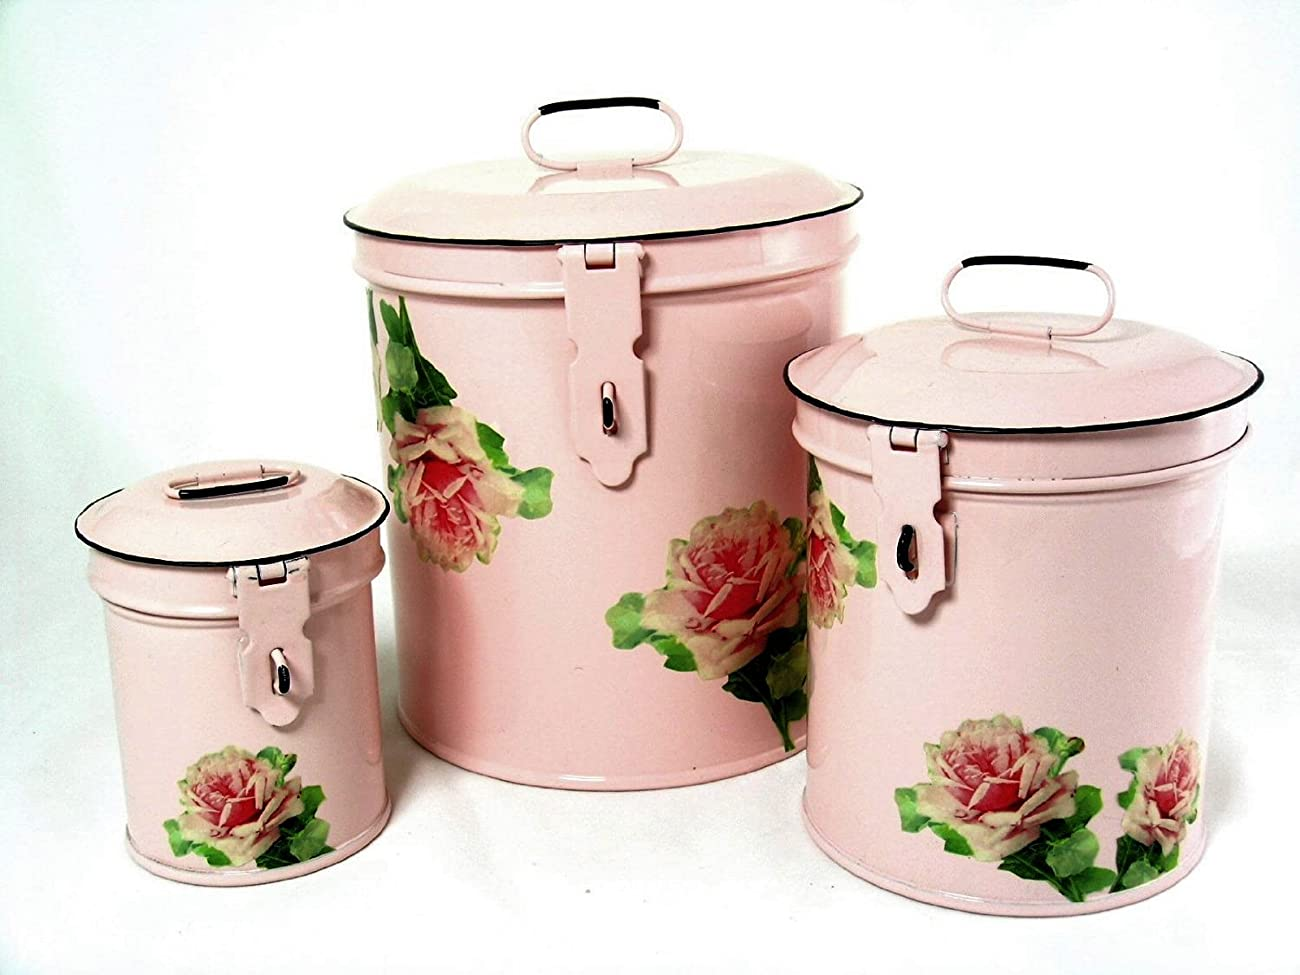 Retro Vintage Canister Set ~ Kitchen Storage Canisters E8 Decorative Containers ~ Shabby Chic Pink Enamel with Shabby Antique Rose 0